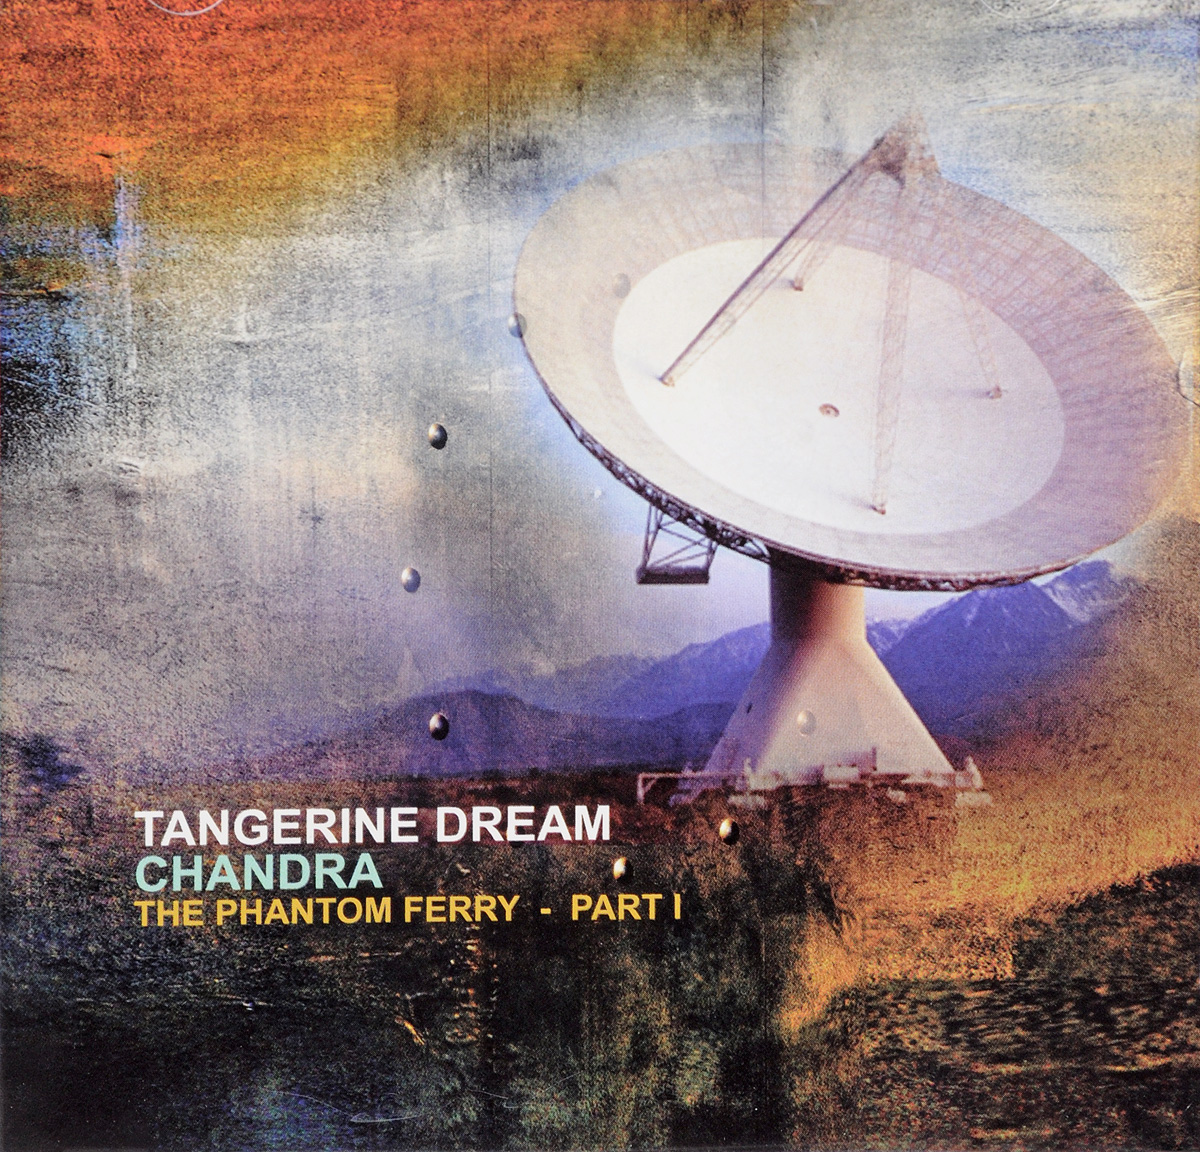 Tangerine Dream. Chandra - Phantom Ferry I